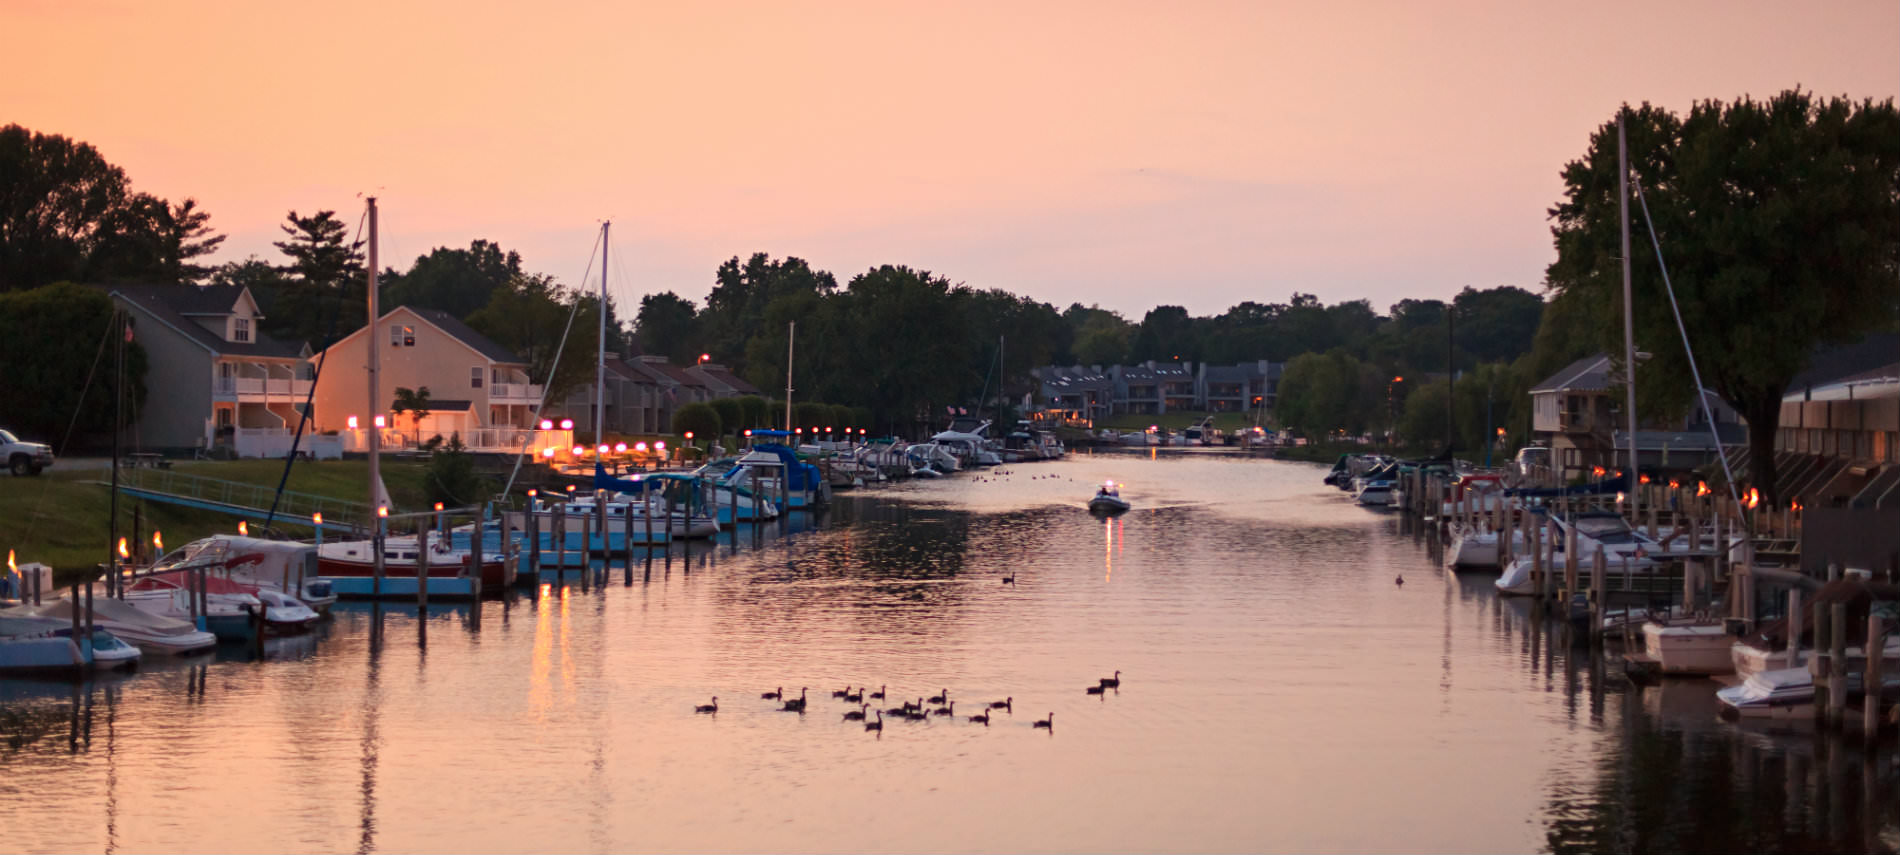 Marina at dusk with ducks swimming and boats docked, green trees in back, white building